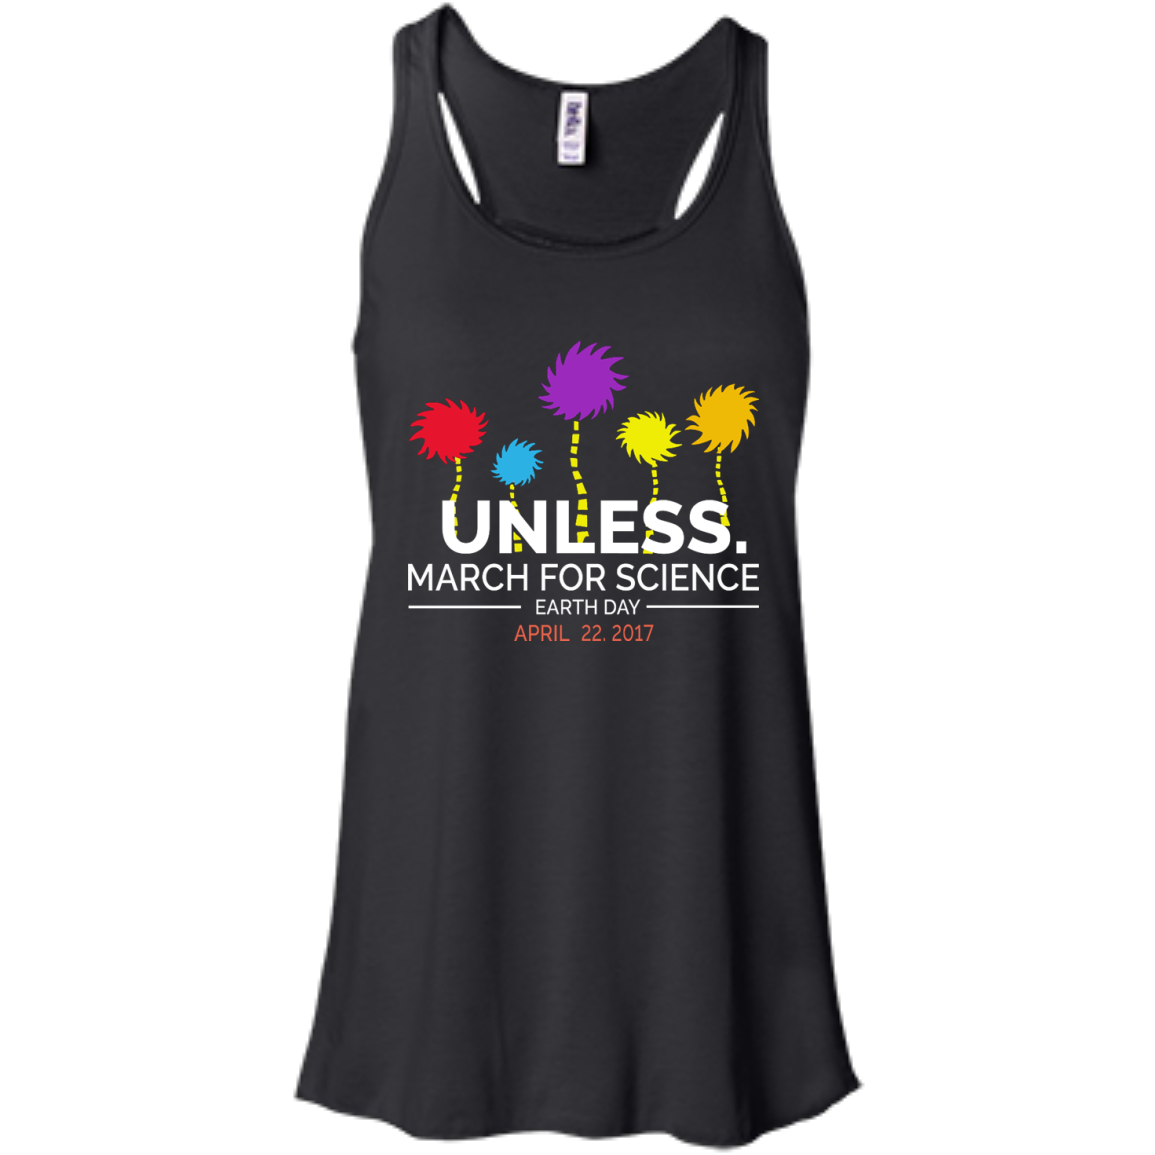 the Lorax Unless March for science racerback tank top shirt